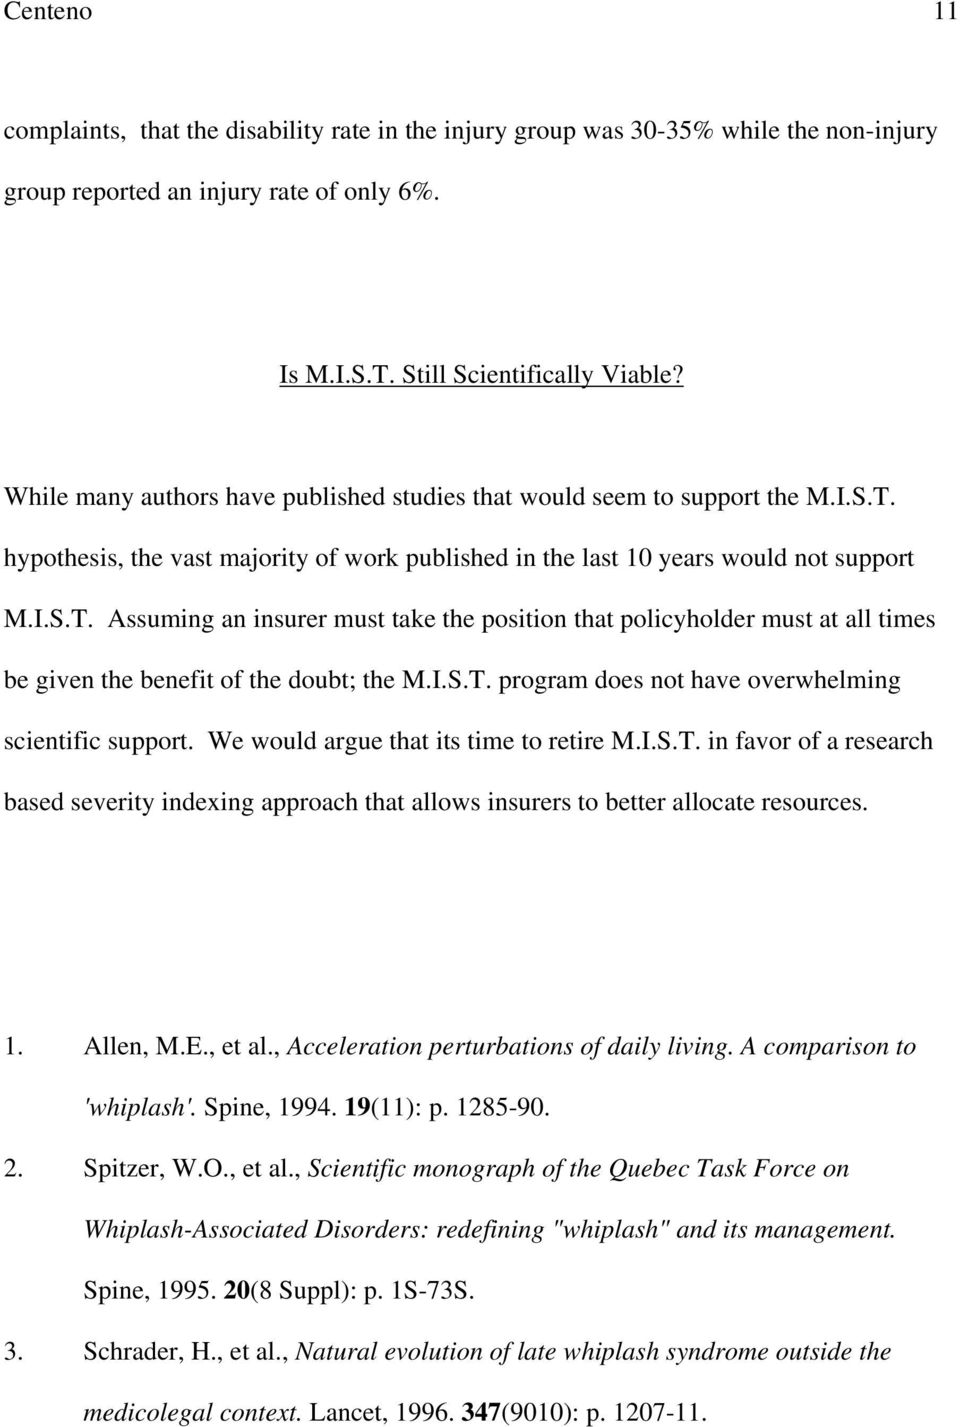 hypothesis, the vast majority of work published in the last 10 years would not support M.I.S.T.